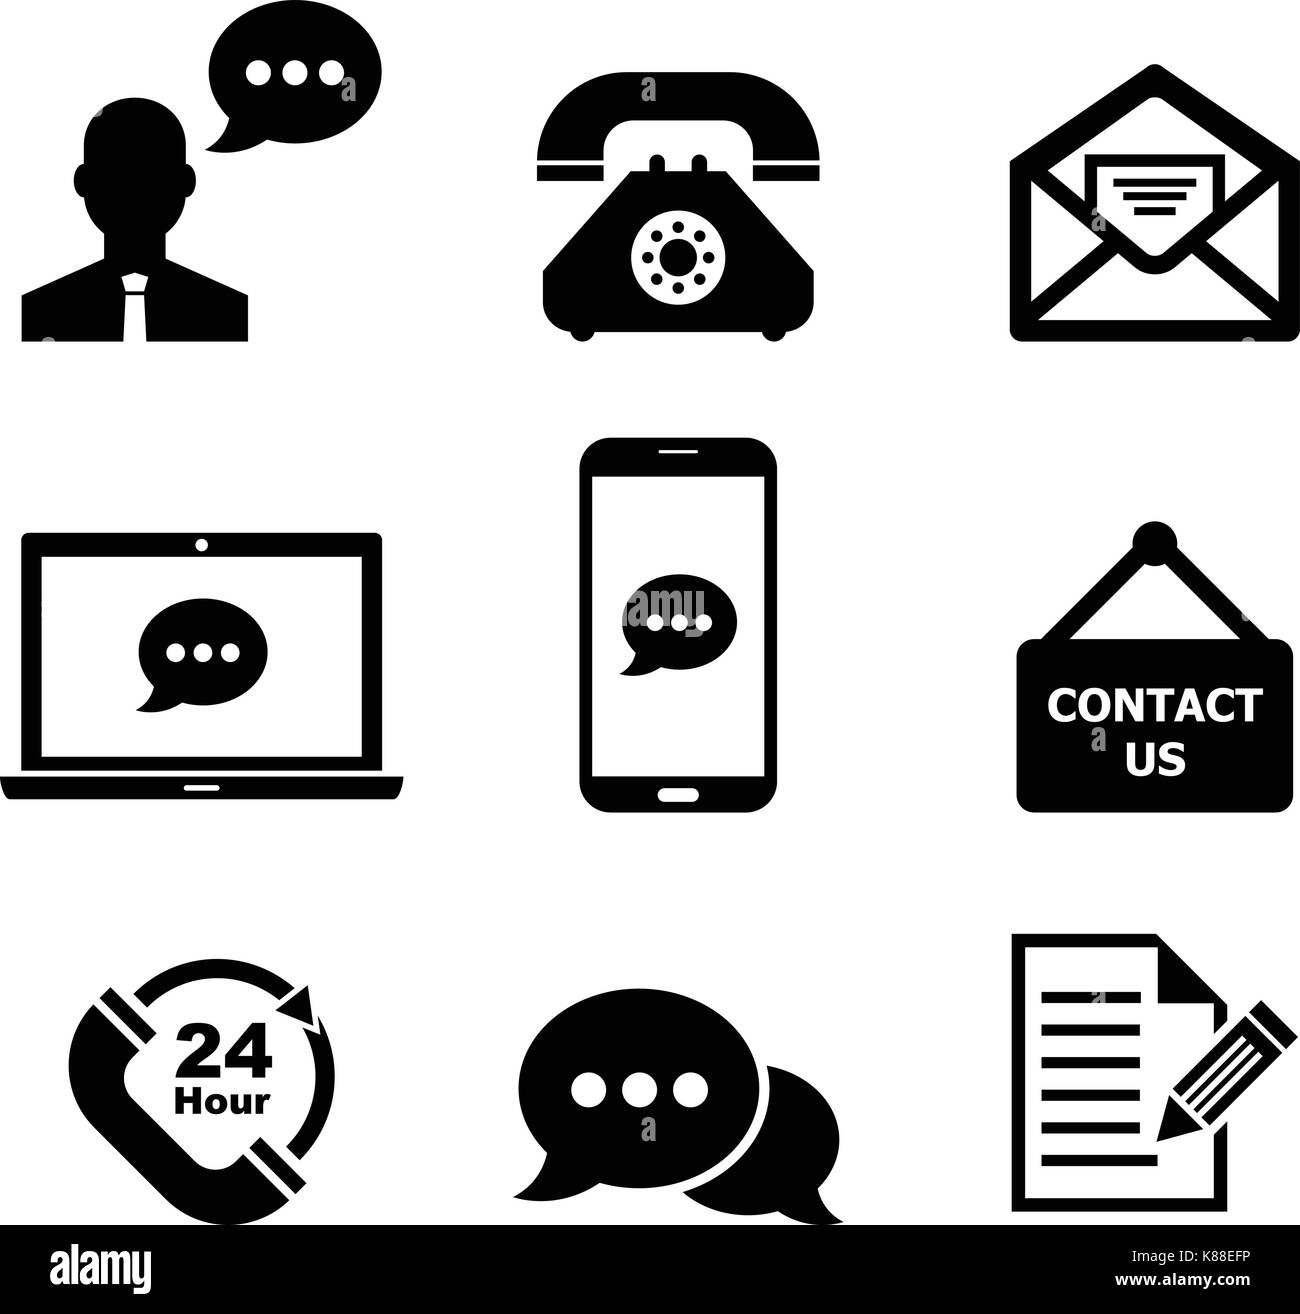 Contact us icon set - Stock Vector